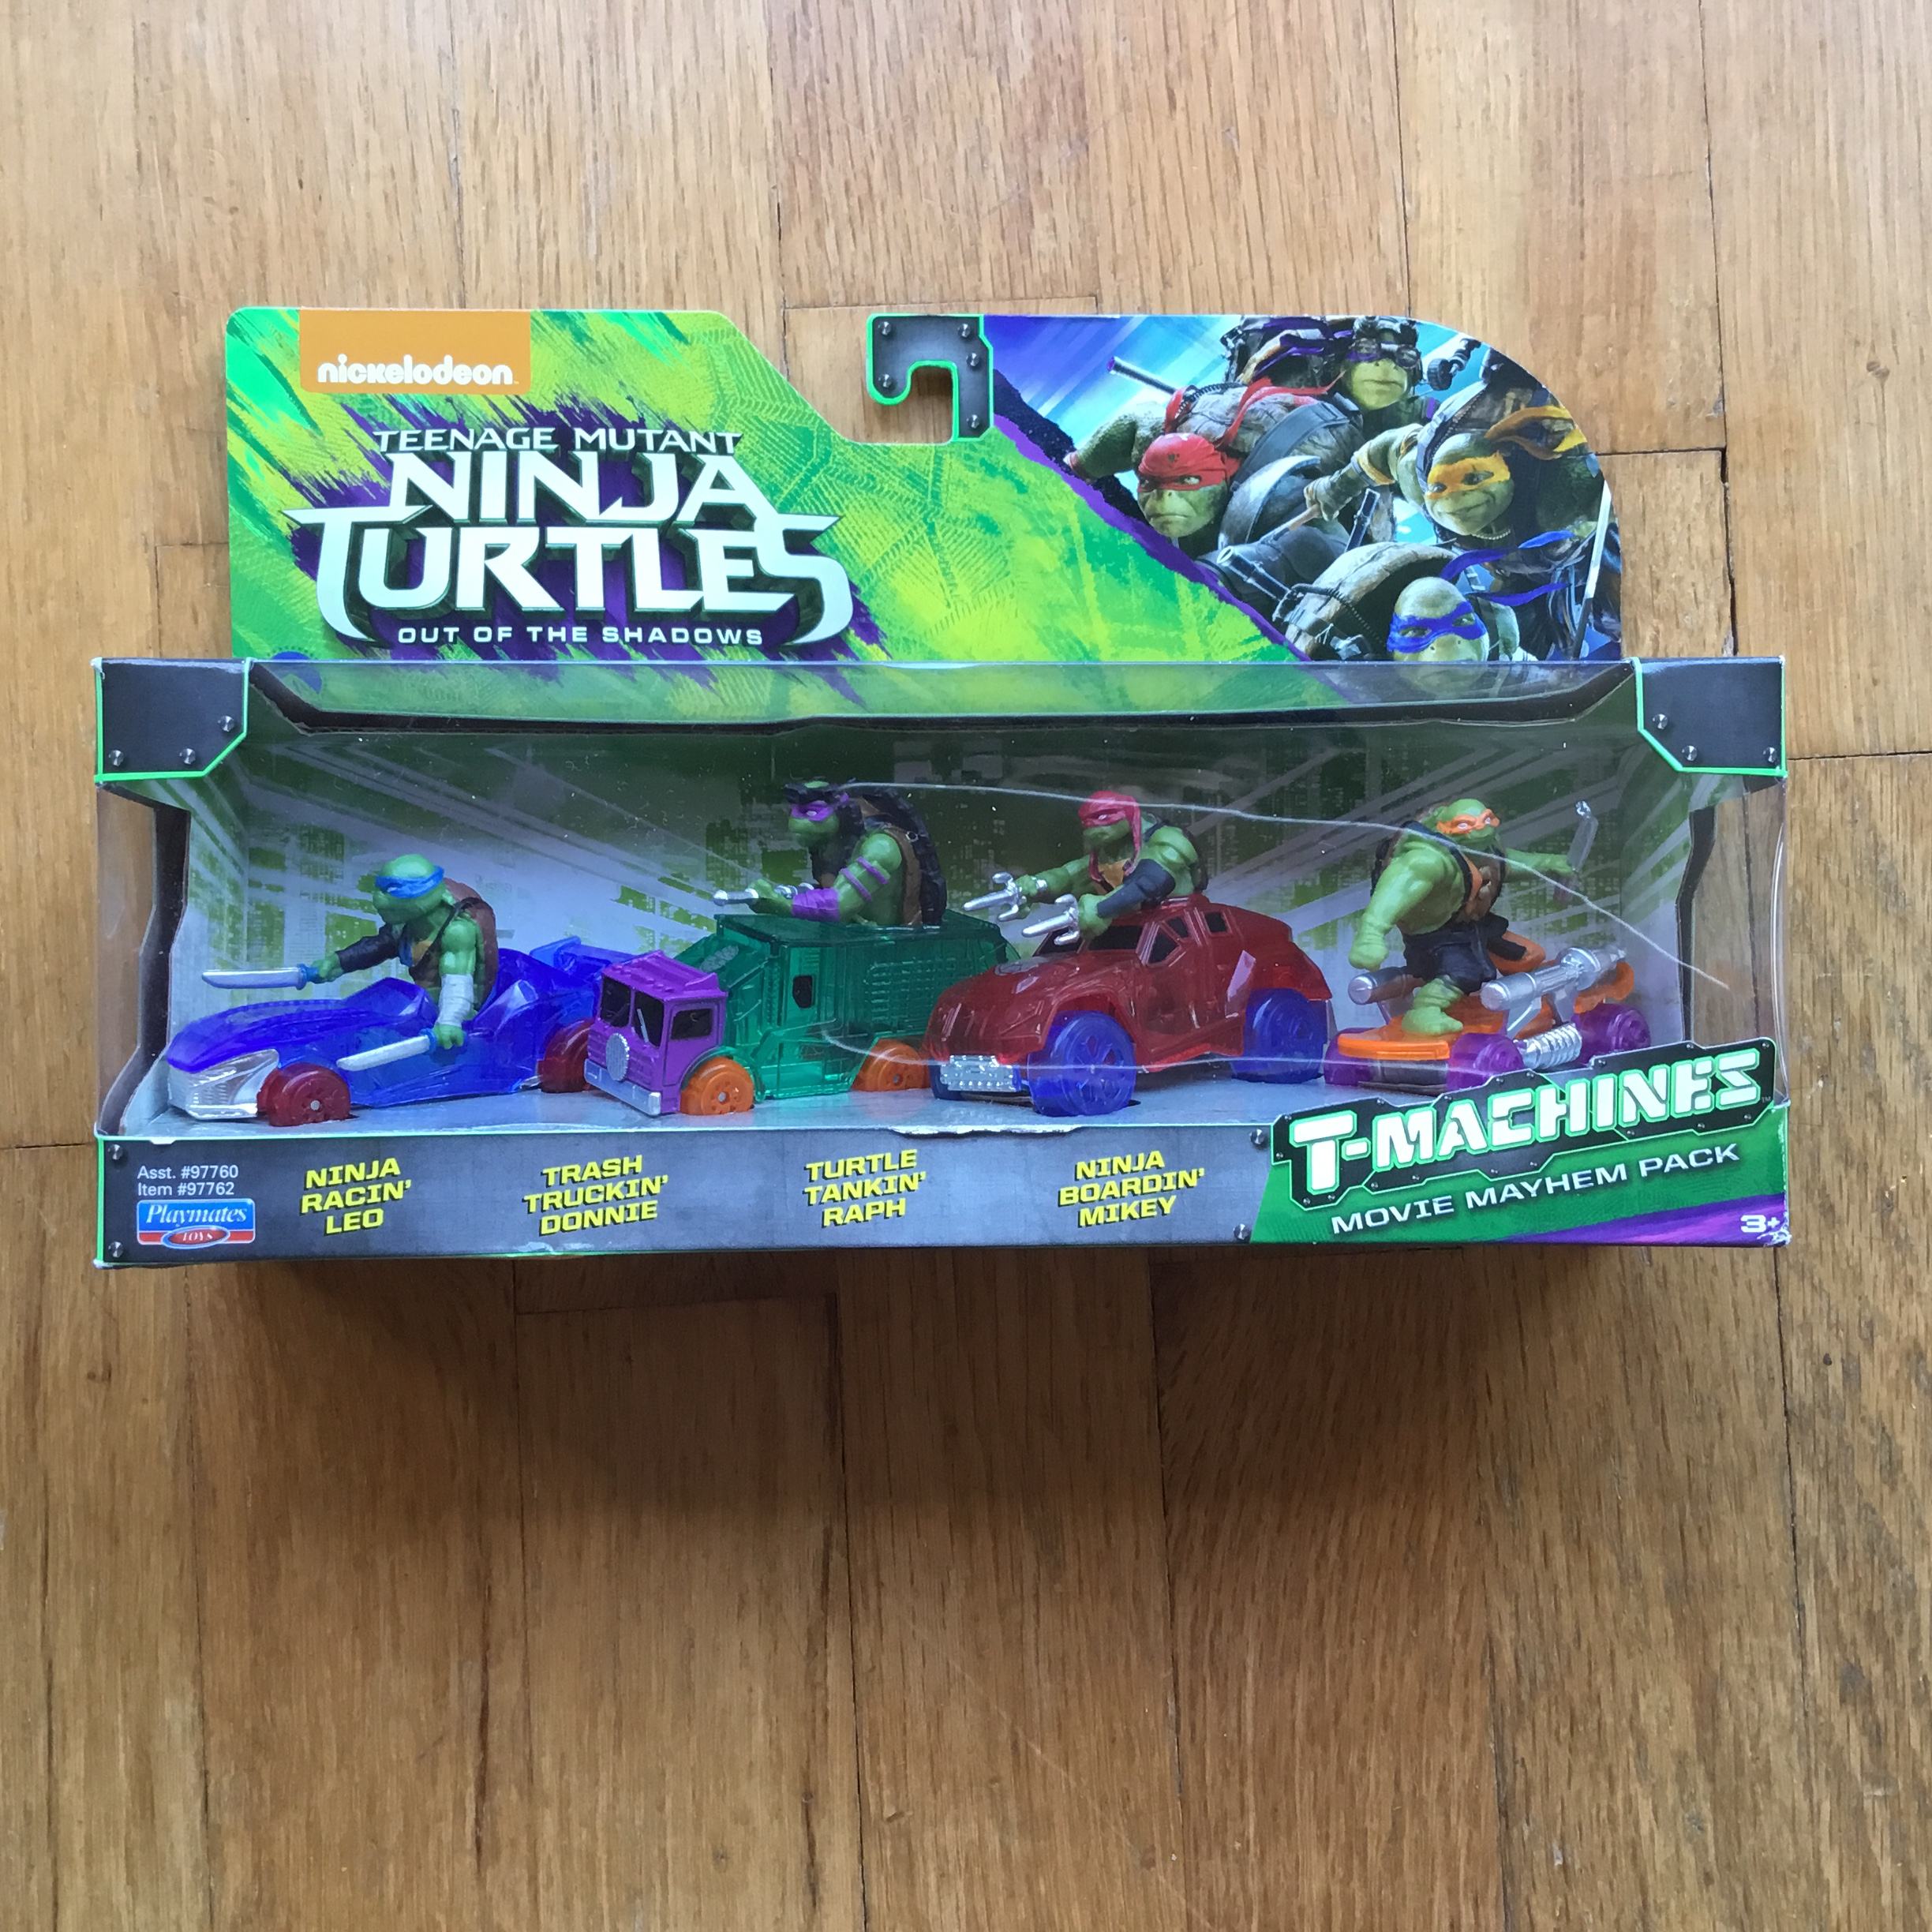 2016 TMNT : Out of the Shadows T-Machines Movie Mayhem Pack